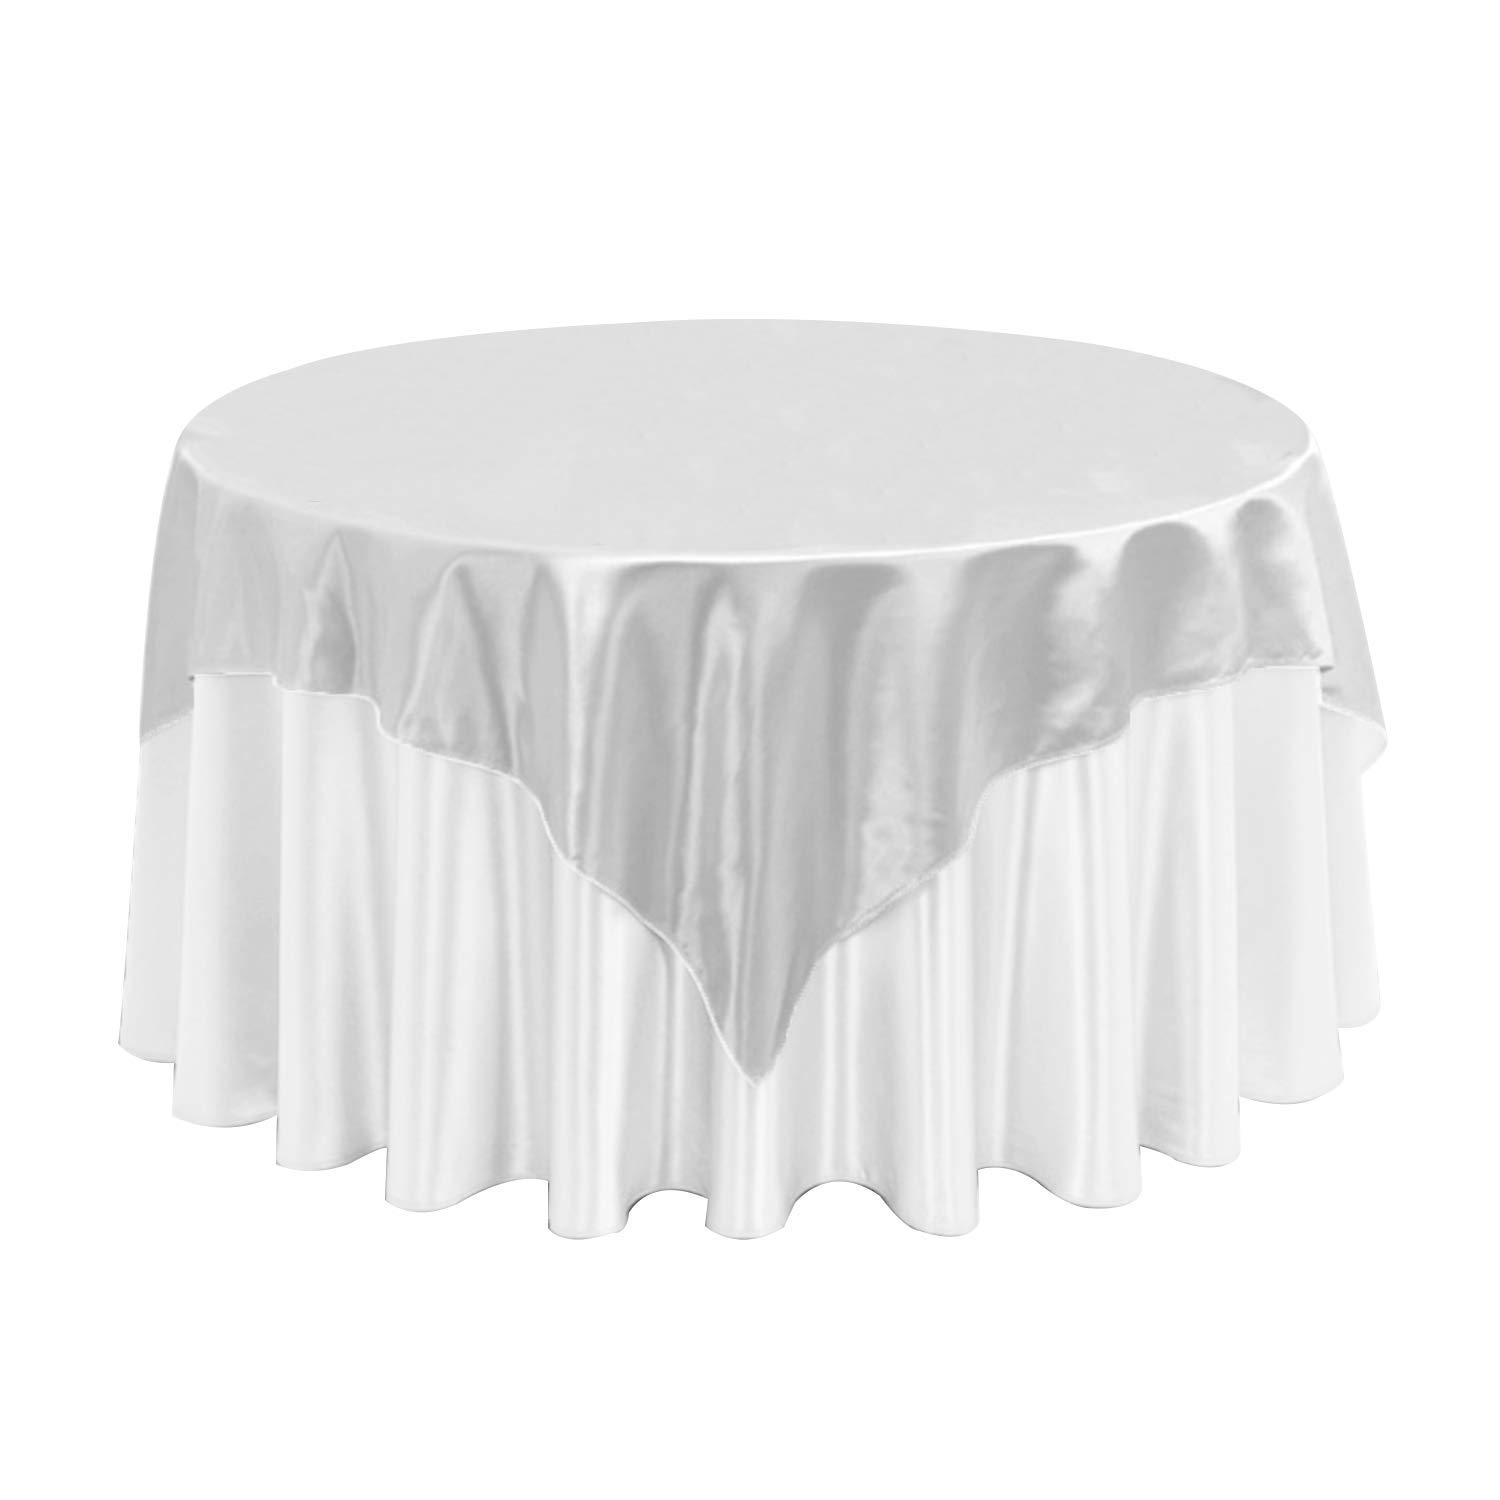 Get Quotations Tablecloths Table Cover Washable Cloth Linen Dinner Kitchen Home Decor Top Overlay For